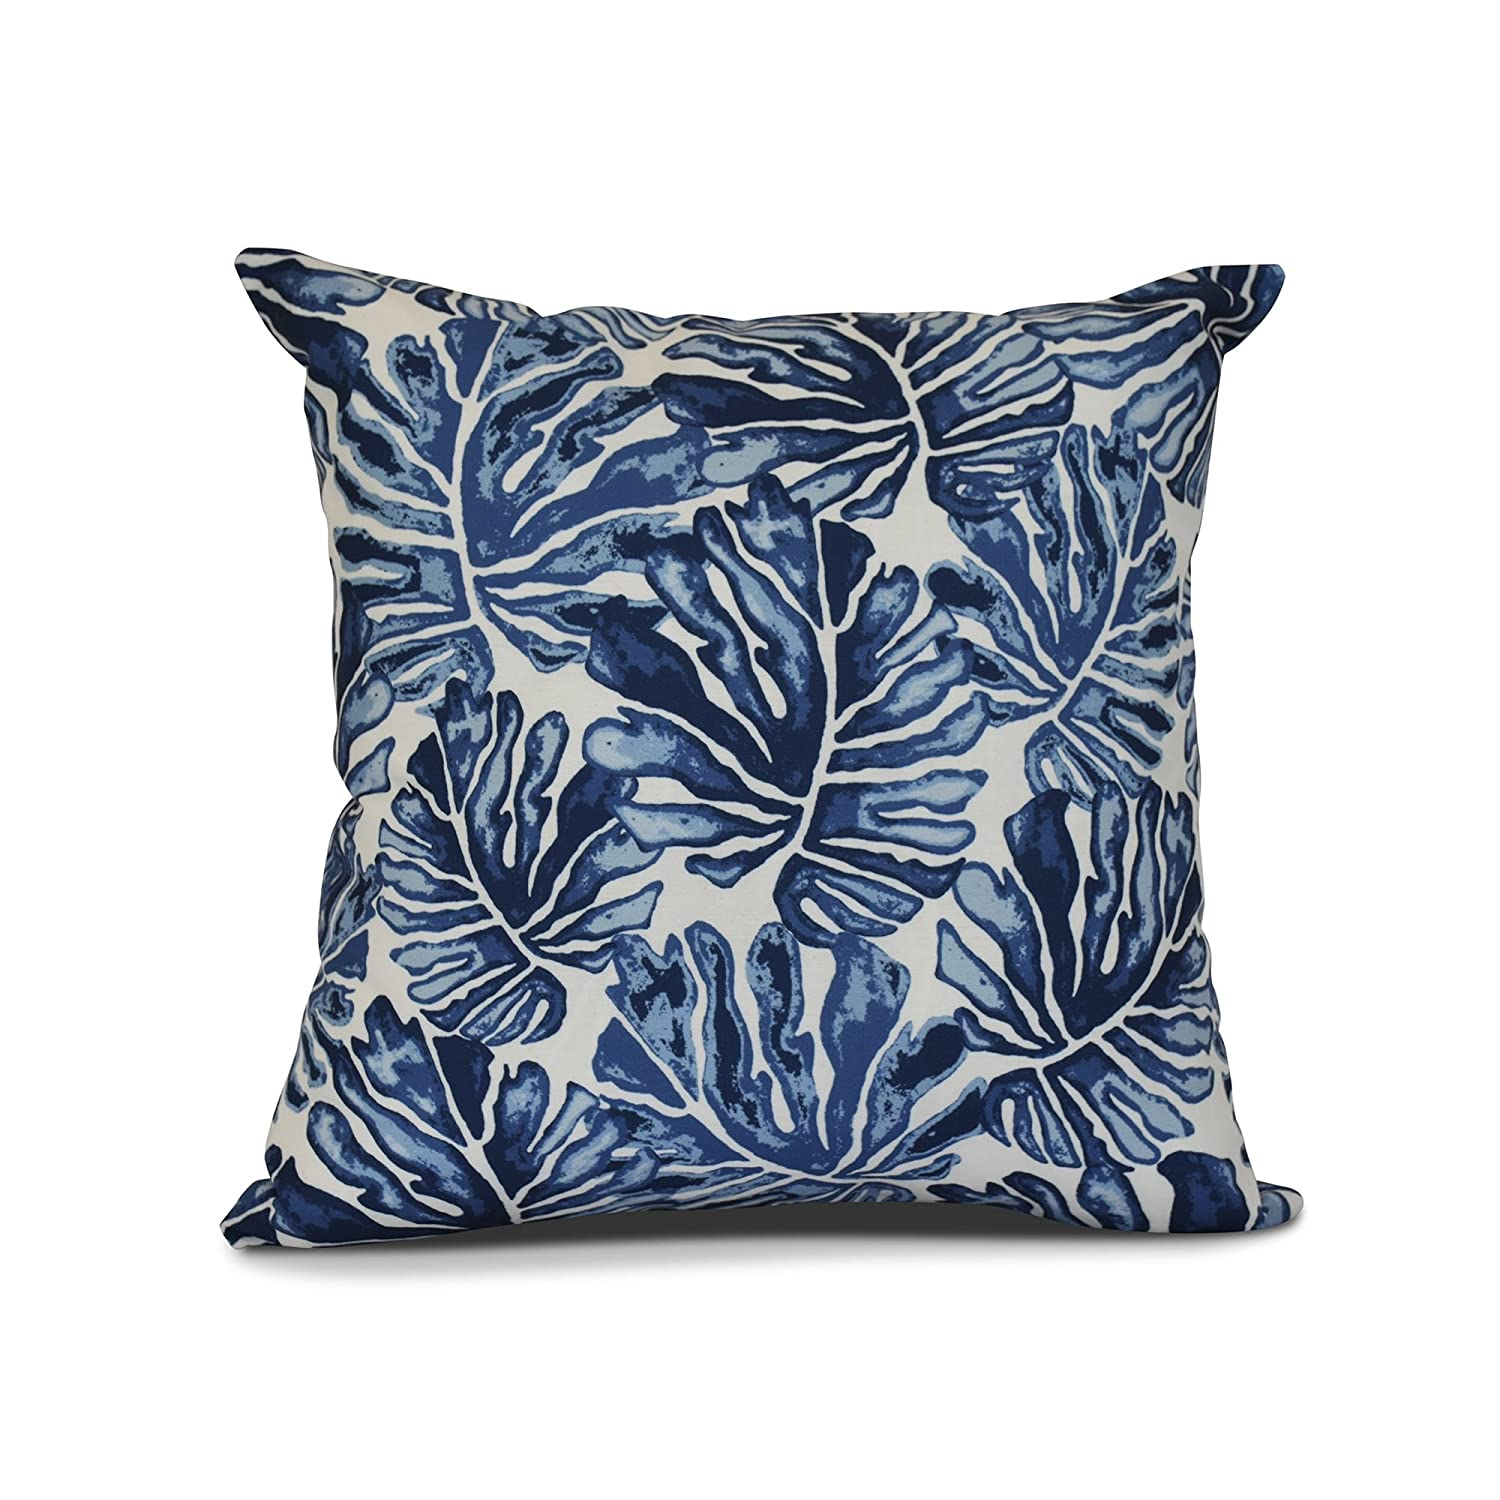 Ebydesign Palm Leaves Floral Print Outdoor Pillow 20' x 20' Purple